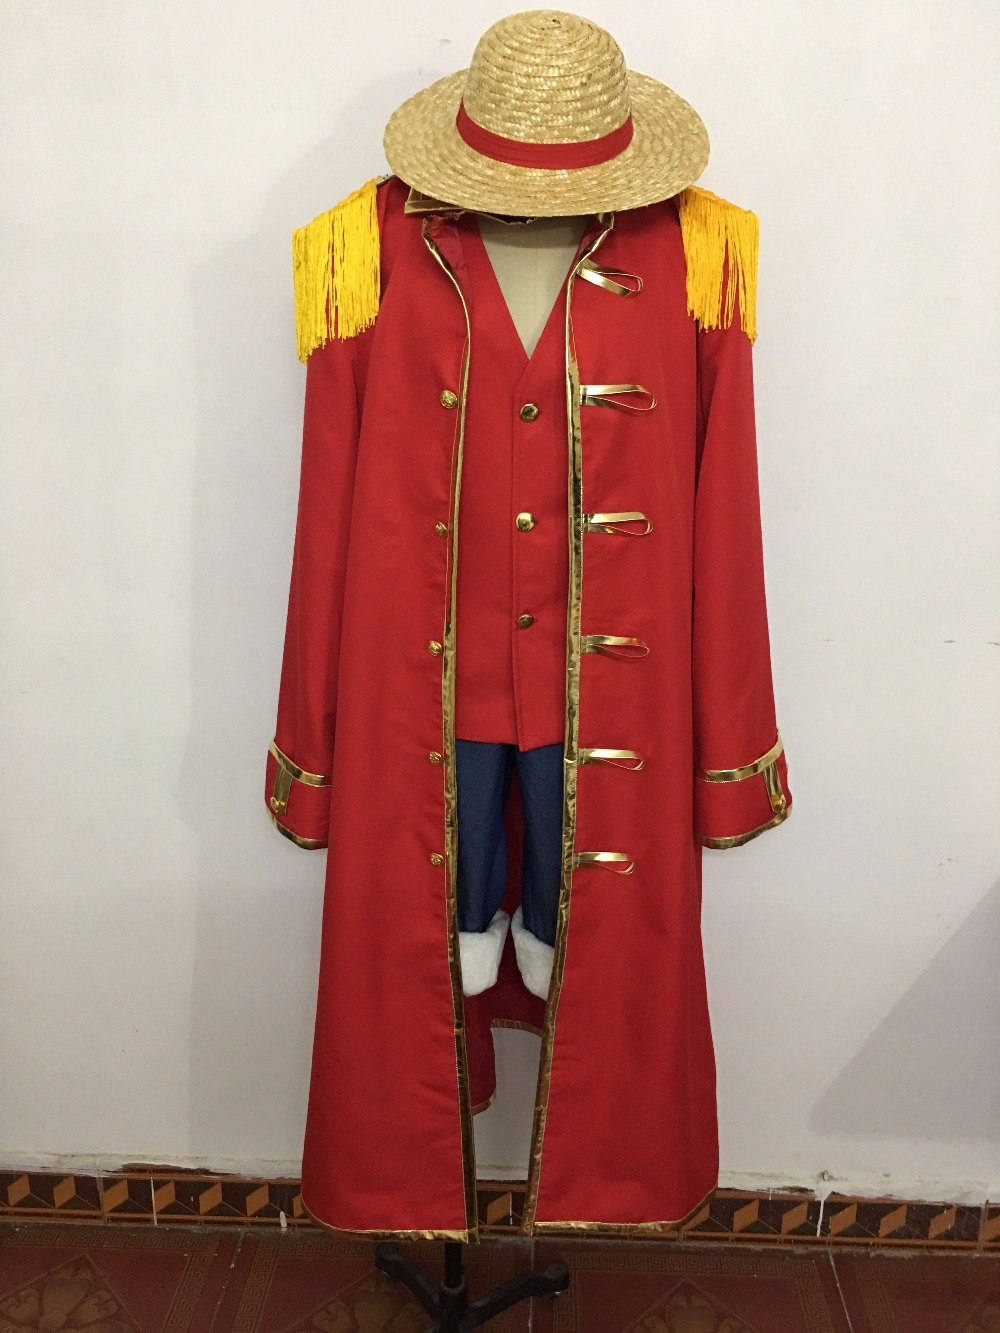 Novelty & Special Use Costumes & Accessories One Piece Film Z Monkey D Luffy Cosplay Costume All Sizes Custom Made